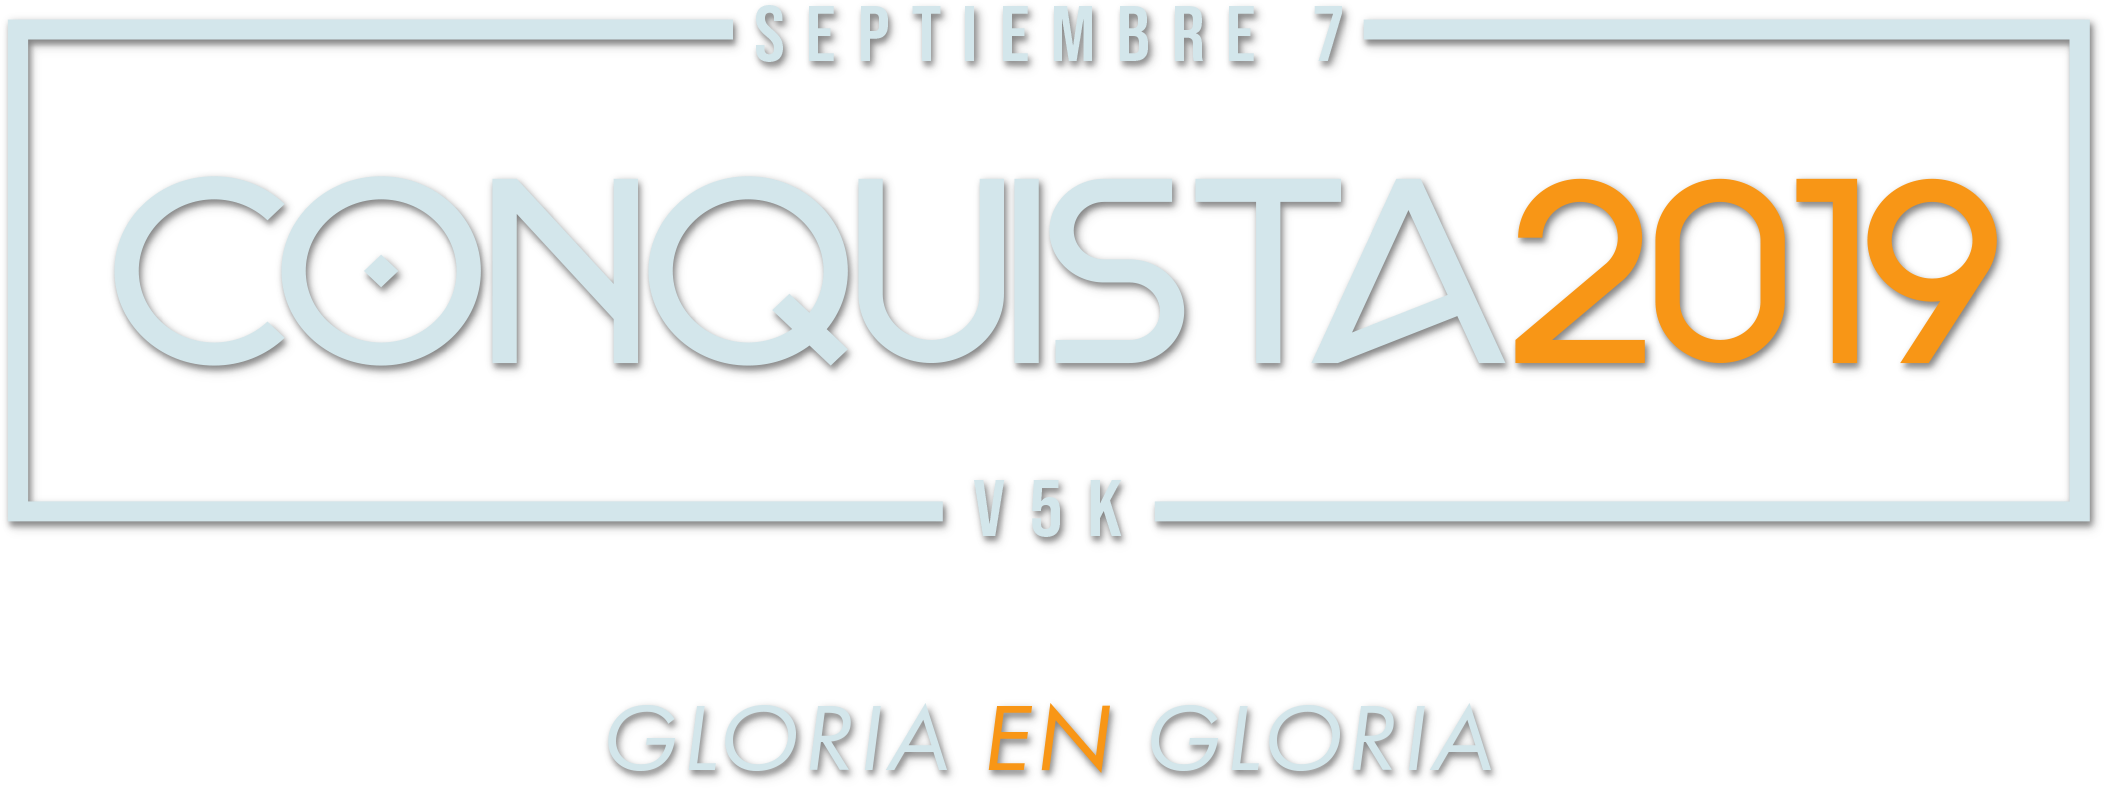 Conquista 2019 Glory to Glory.png